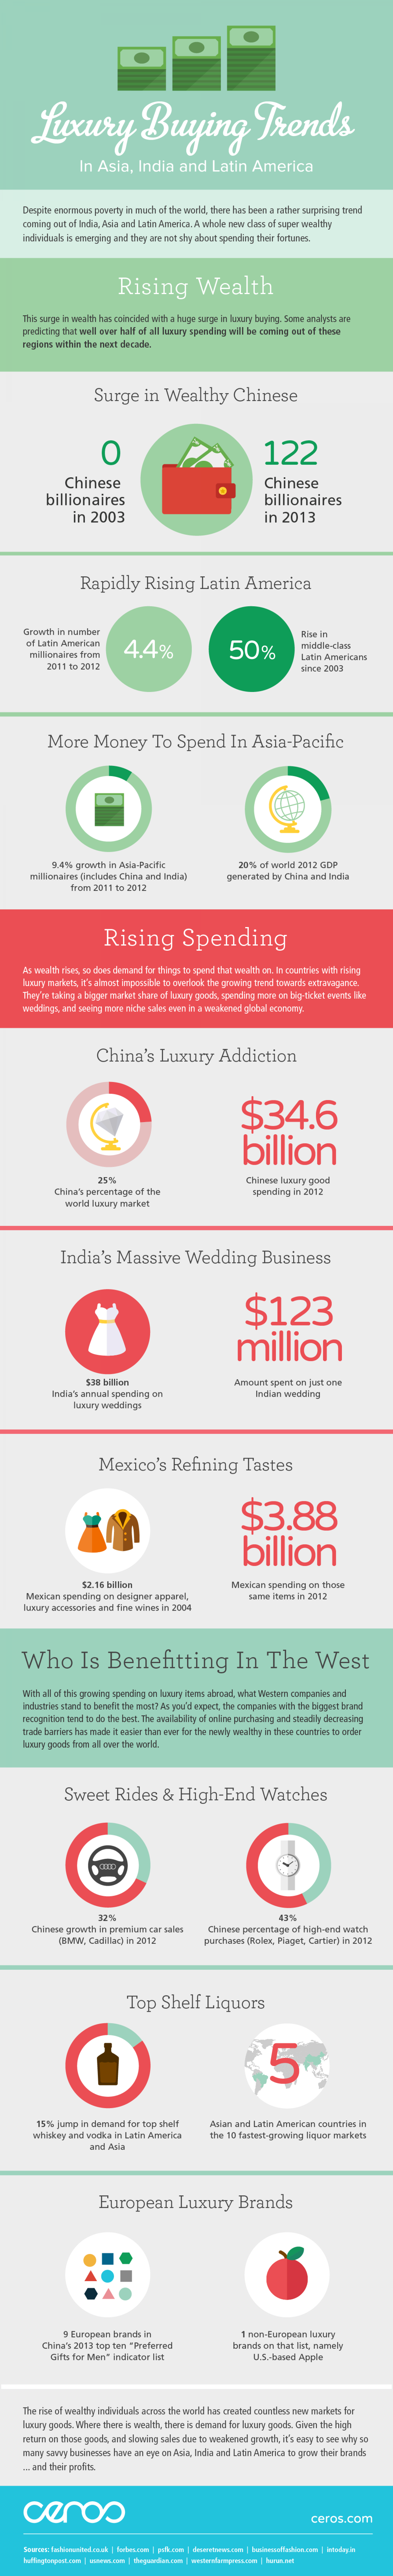 Luxury Buying Trends in Asia, India and Latin America Infographic